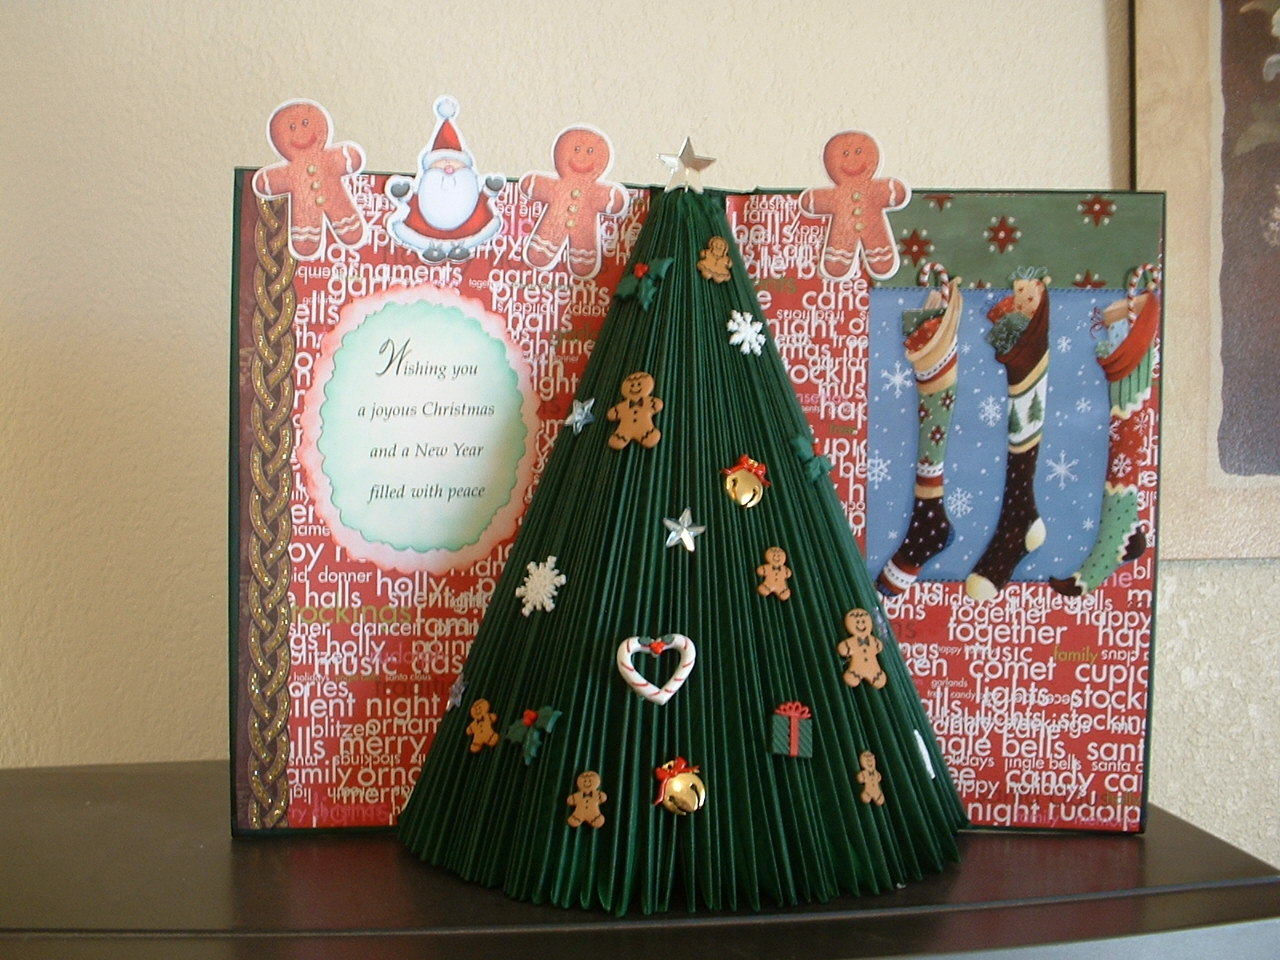 Altered Books As Christmas Decor Beyond Survival In A